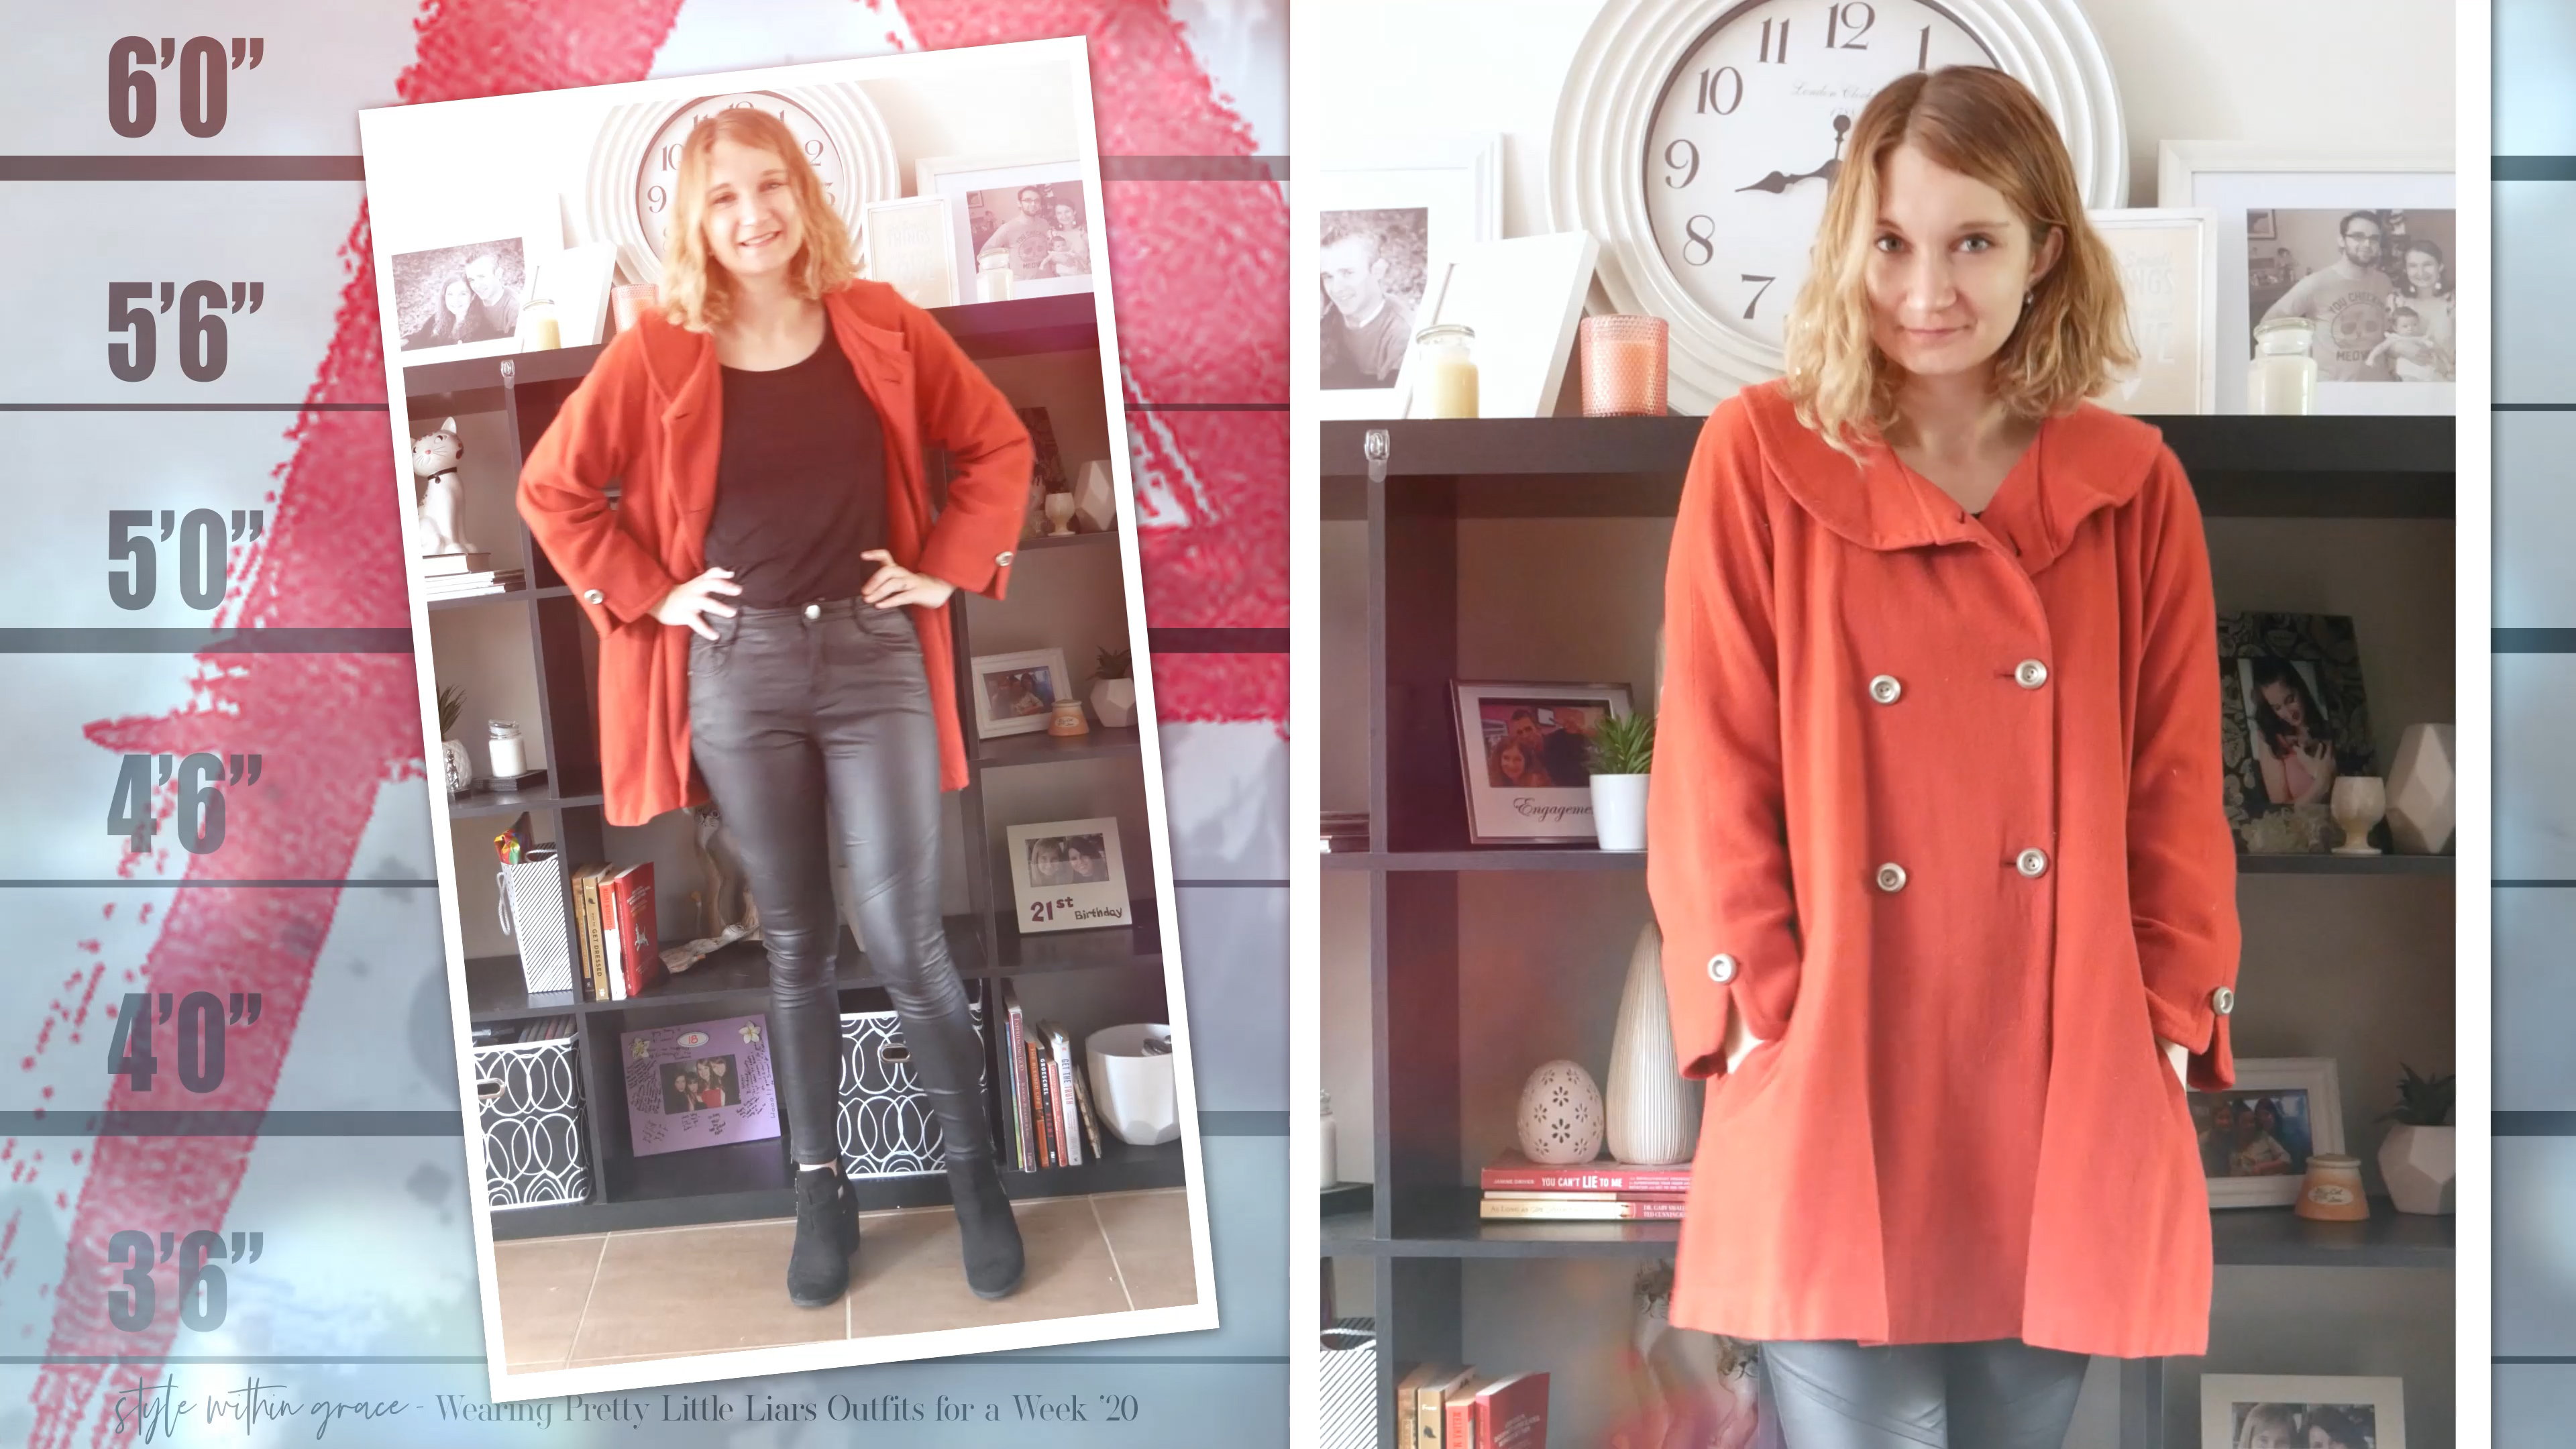 Pretty Little Liars Outfit Day 5 Red Coat